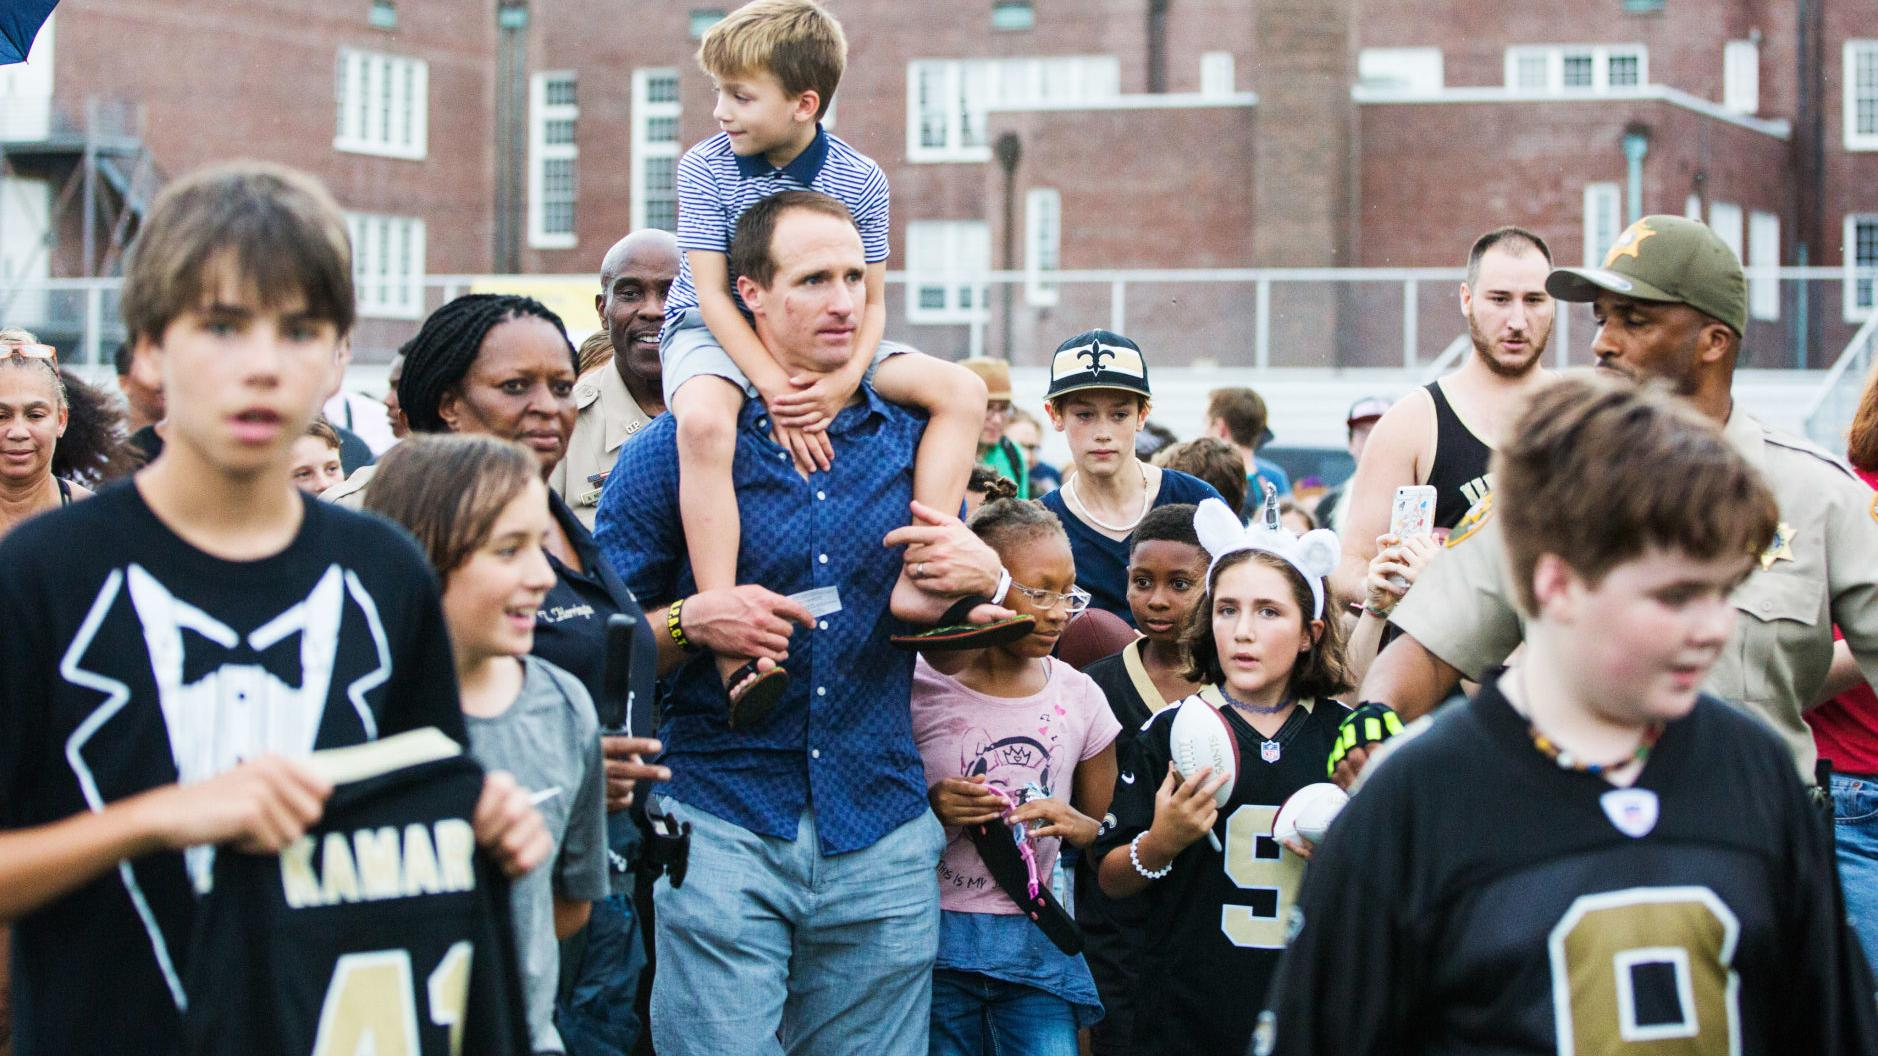 For many, Drew Brees' dedication to New Orleans meant as much as his work in a Saints jersey | Drew Brees | nola.com